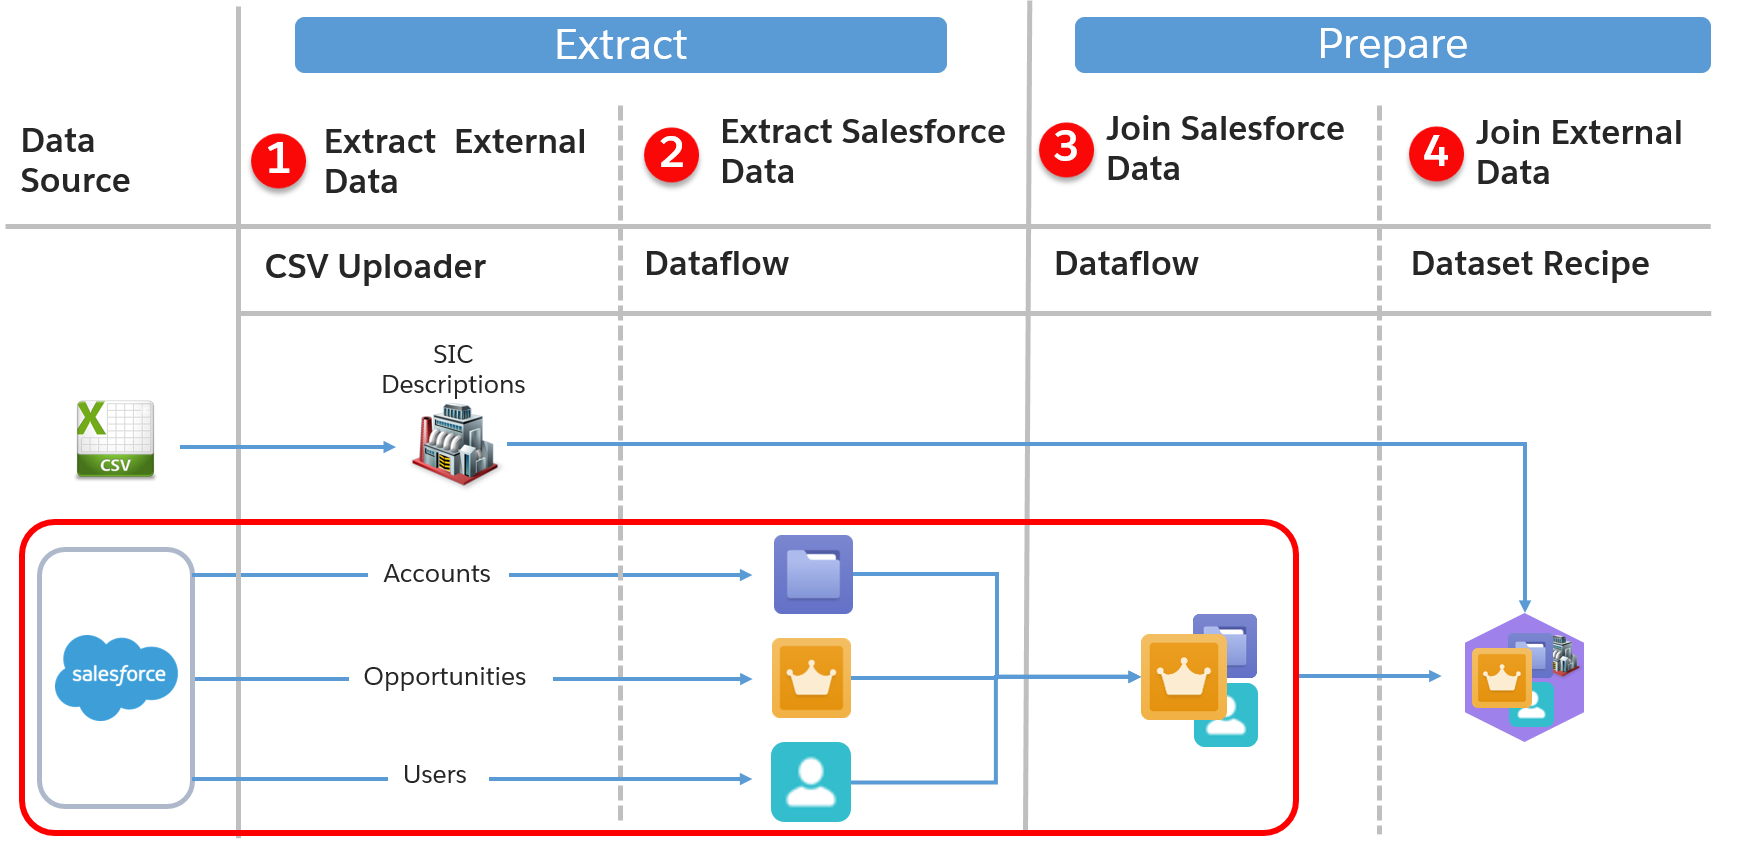 Data journey map with the Salesforce object extraction process highlighted